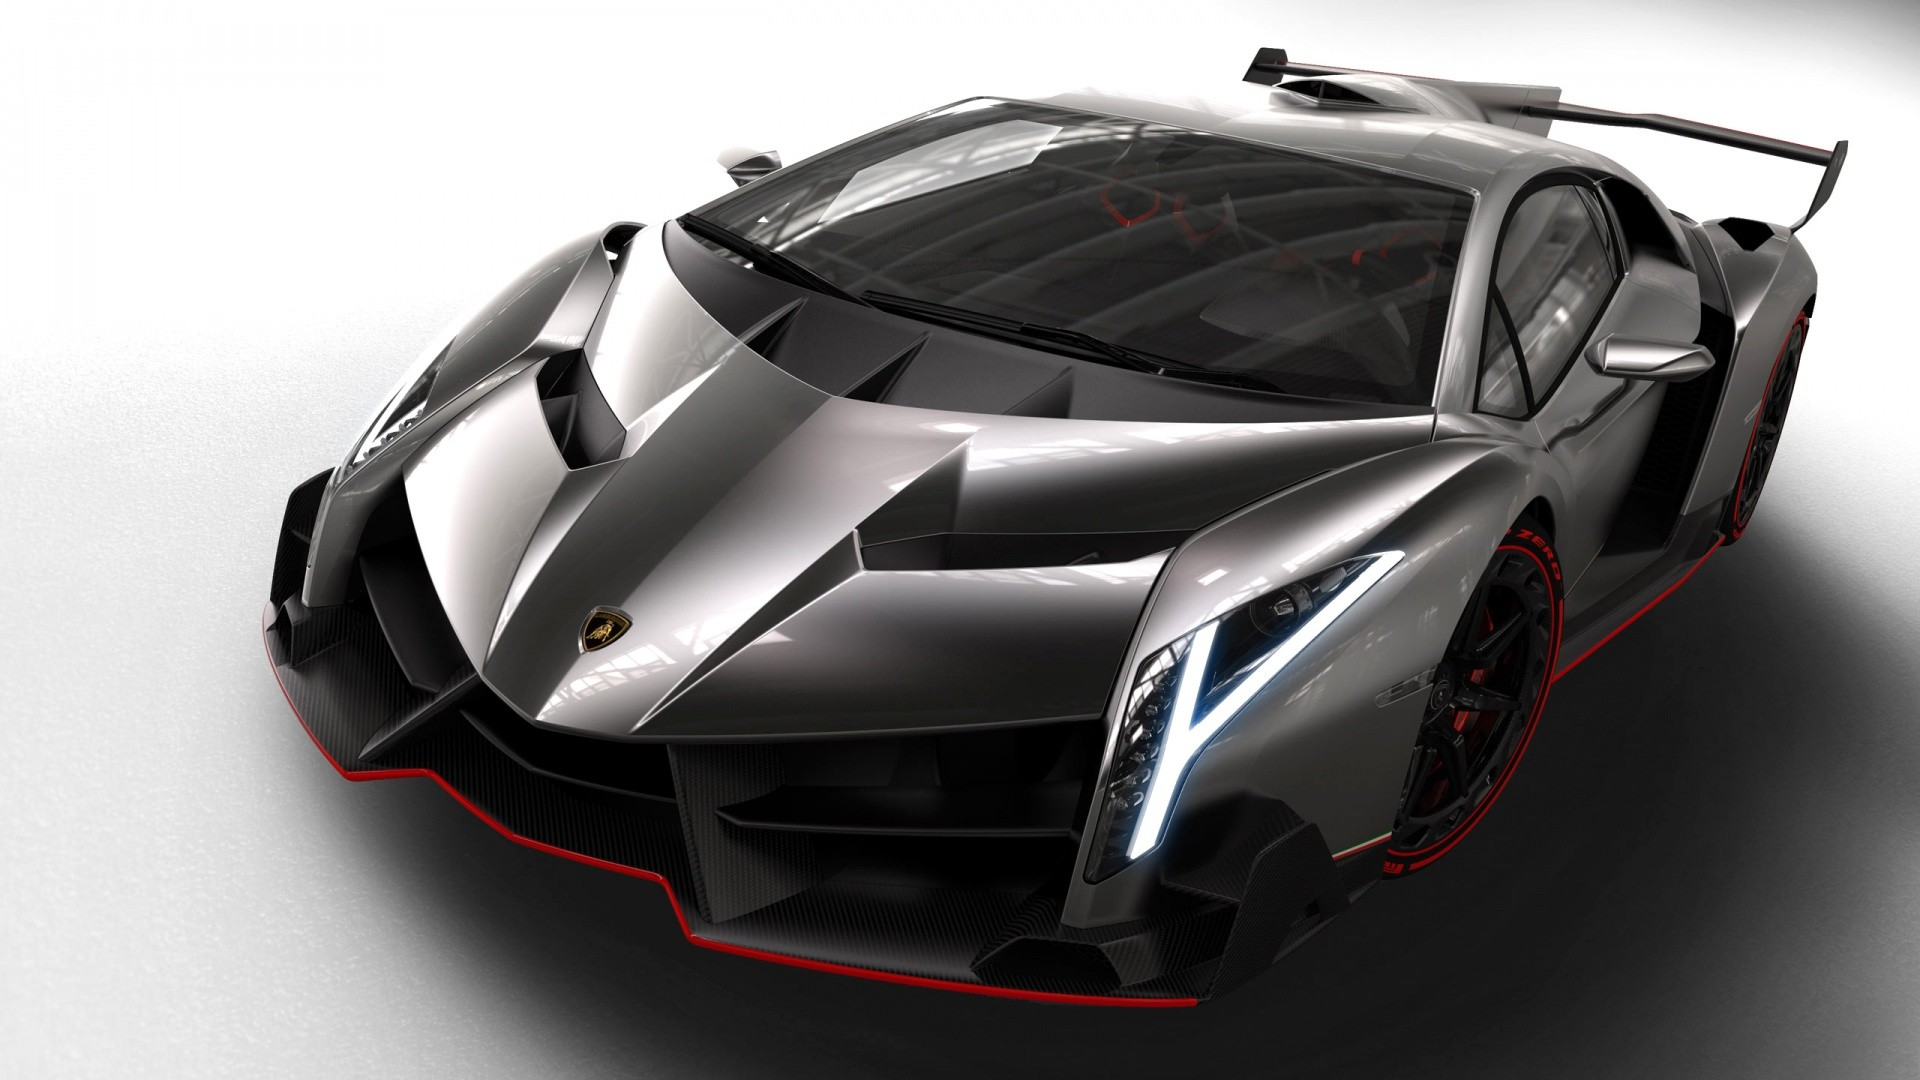 Lamborghini Veneno Roadster Carbon Front View. 1000 images about cars …